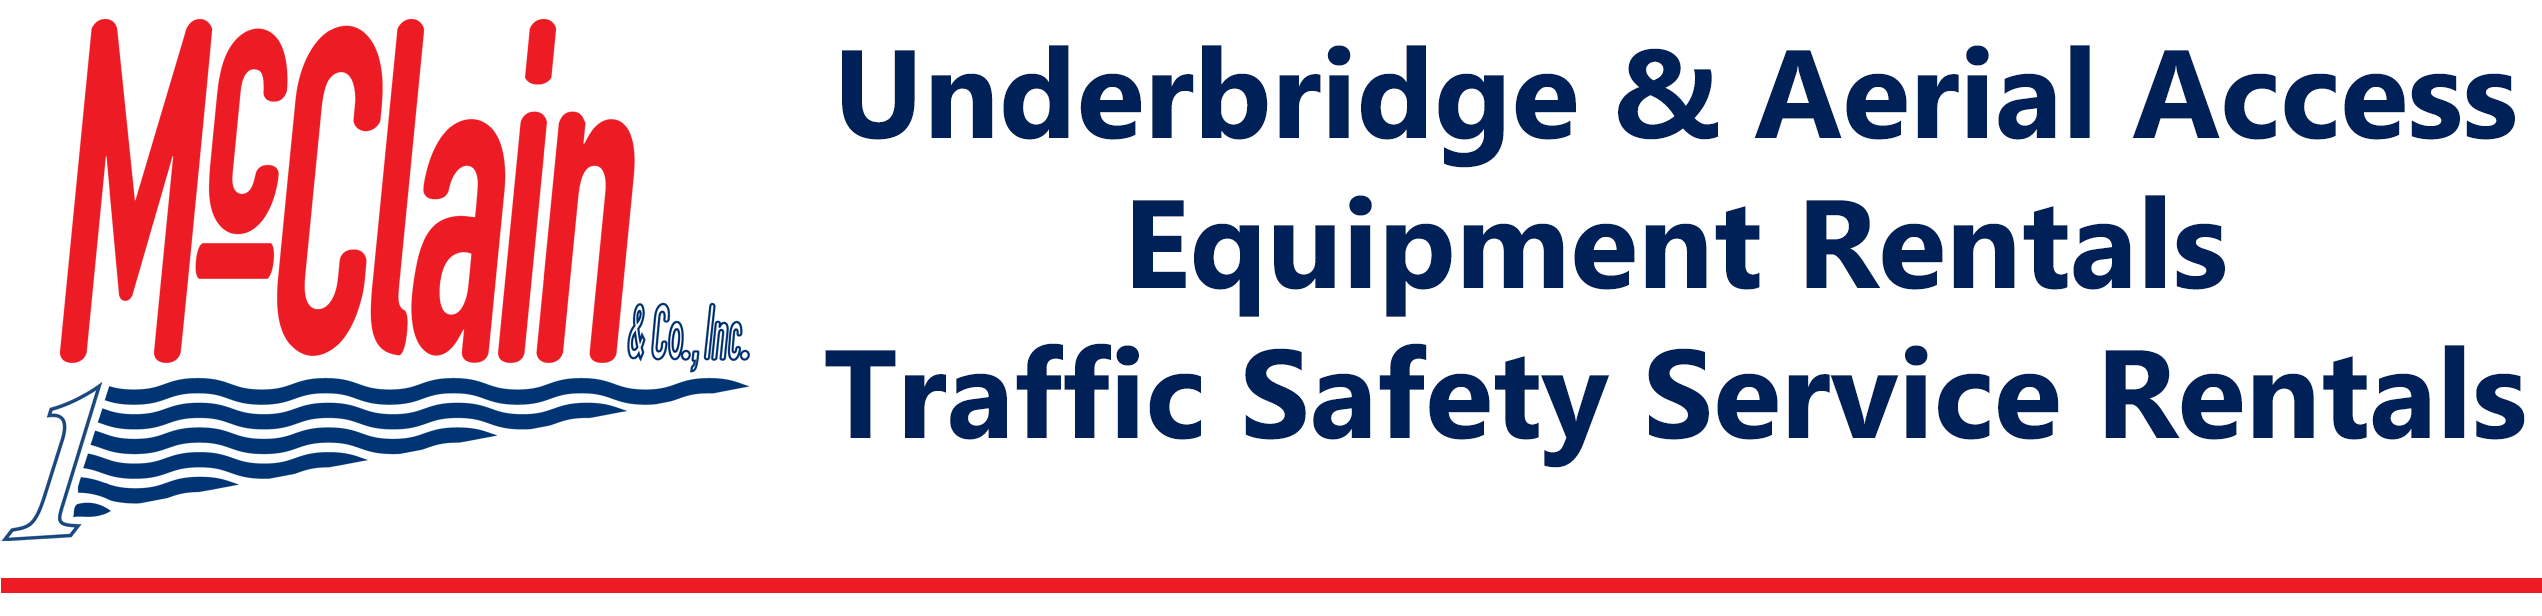 Underbridge and Aerial Access Equipment Rentals | McClain & Co., Inc.